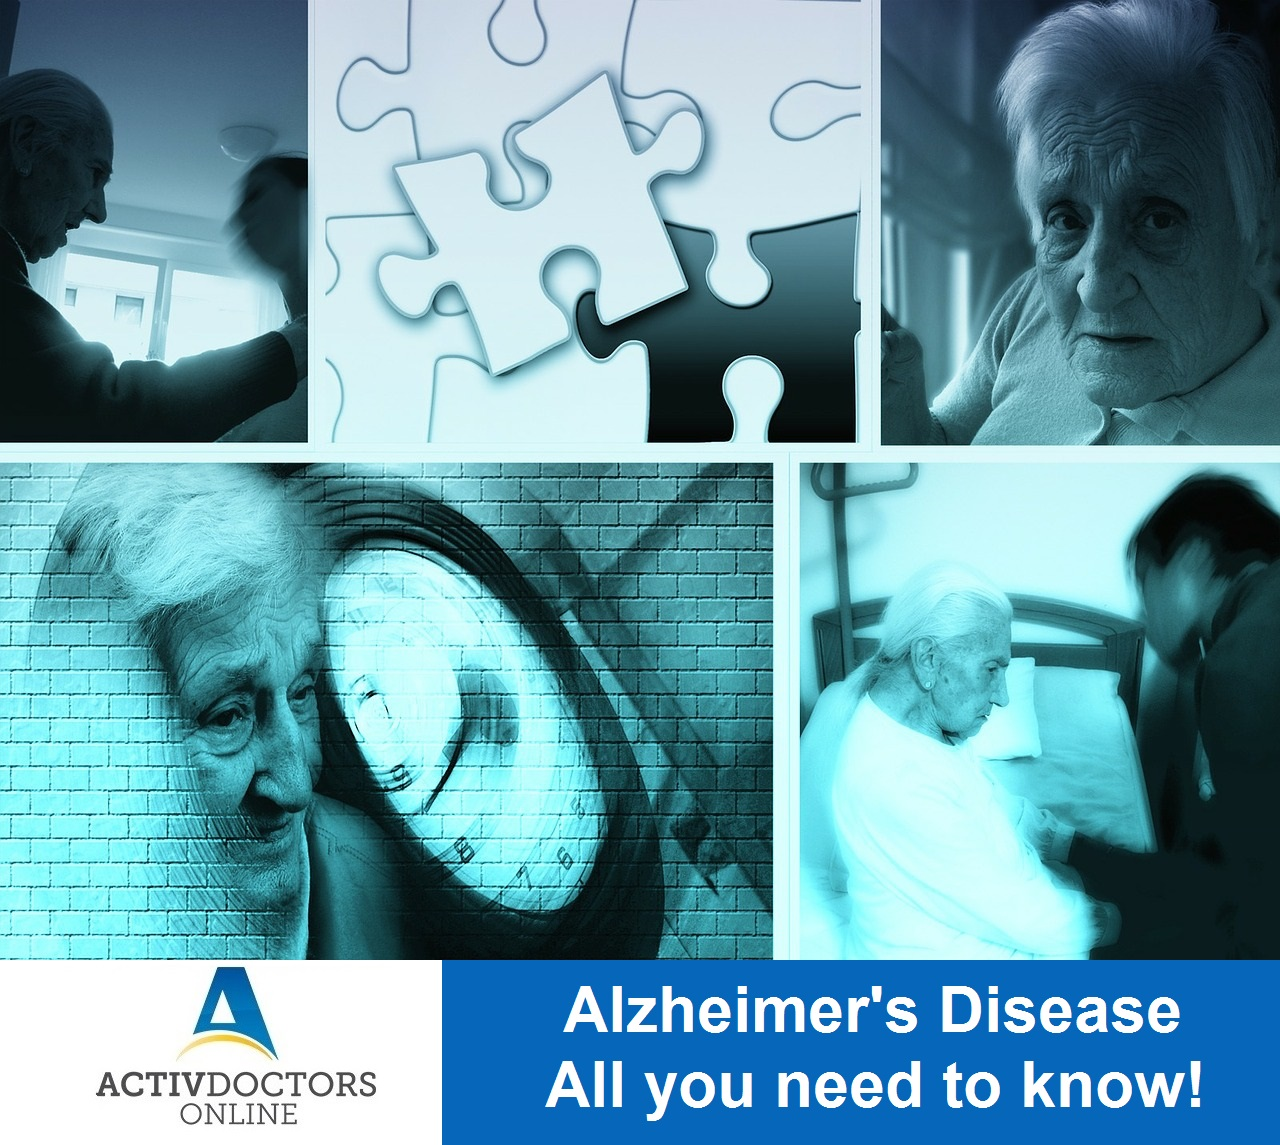 Alzheimer's Disease – All you need to know!